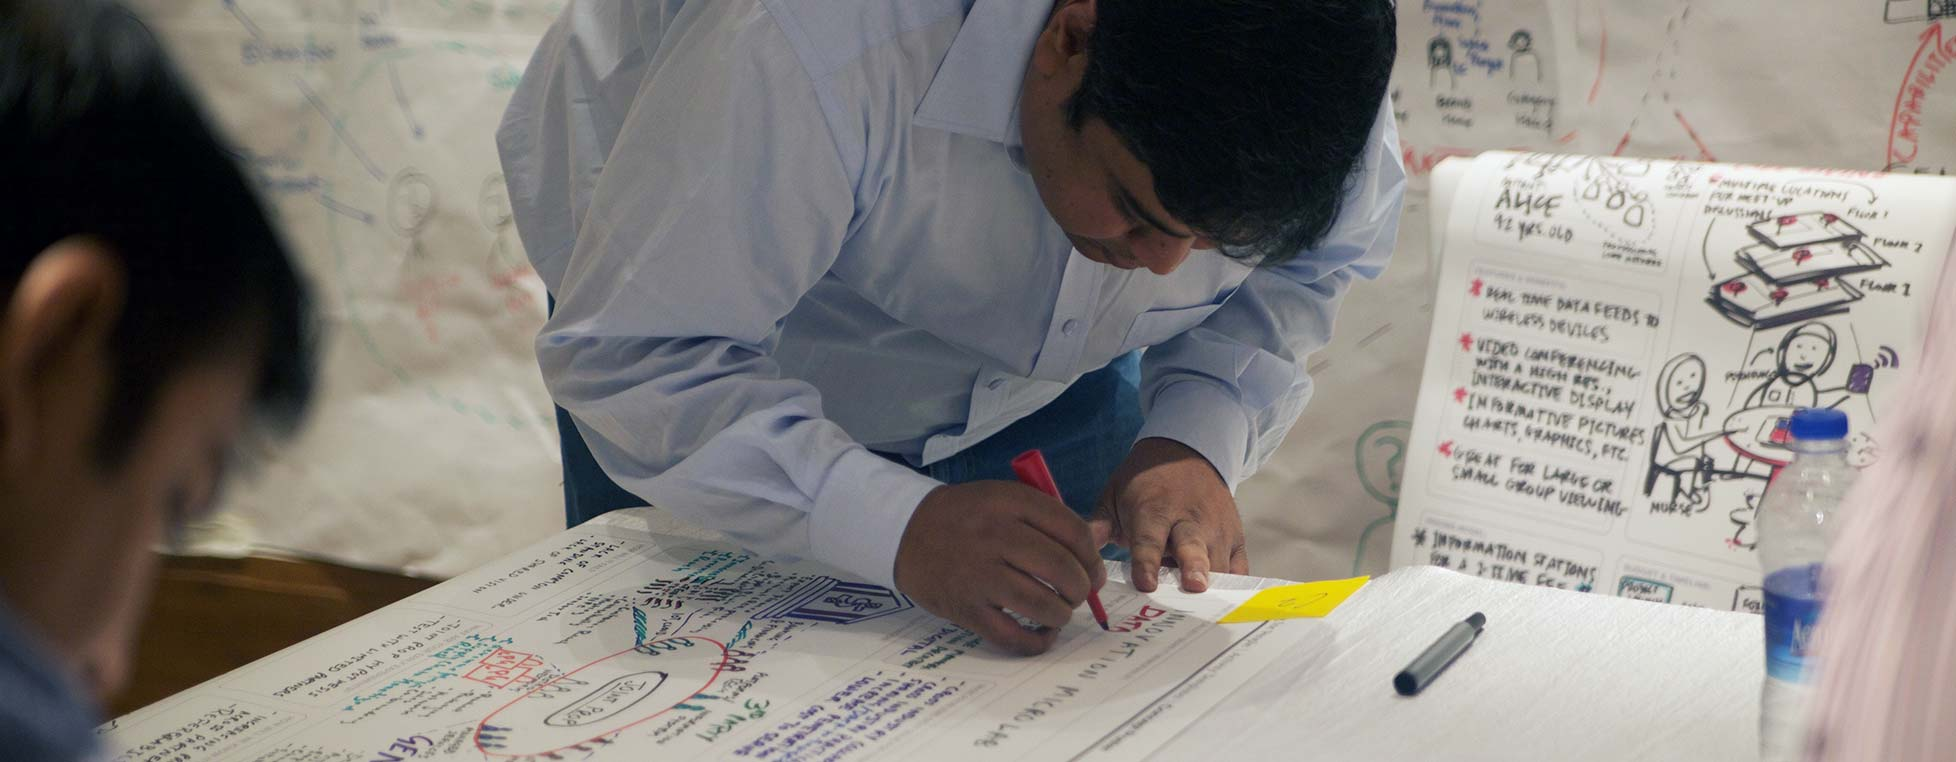 A Genpact team member sketches and writes to craft a visual presentation of a problem-solving concept during a Human-Centered Design work session.